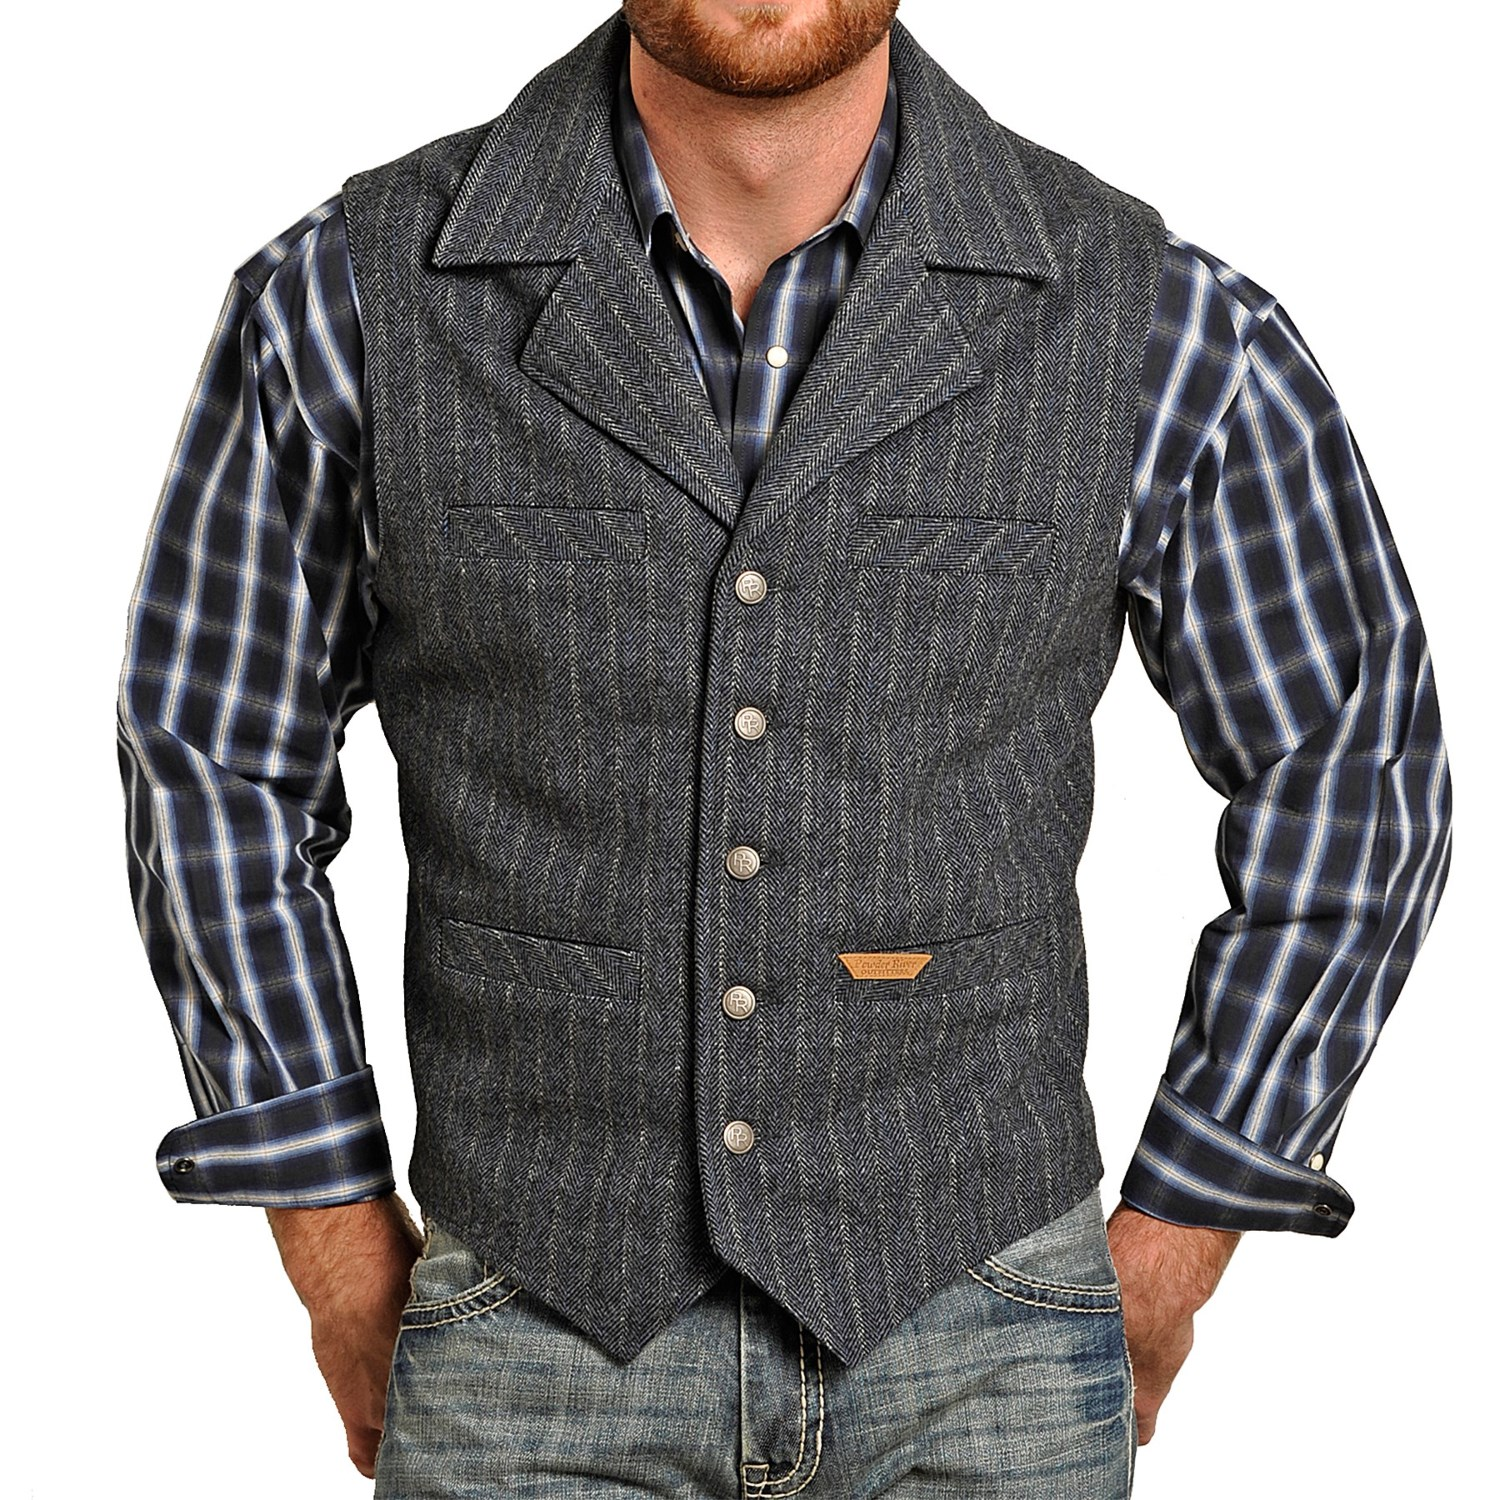 powder river single men Panhandle western wear is a premium trendsetting brand for men's apparel find out why the western world loves our powder river outfitters collection shop now.